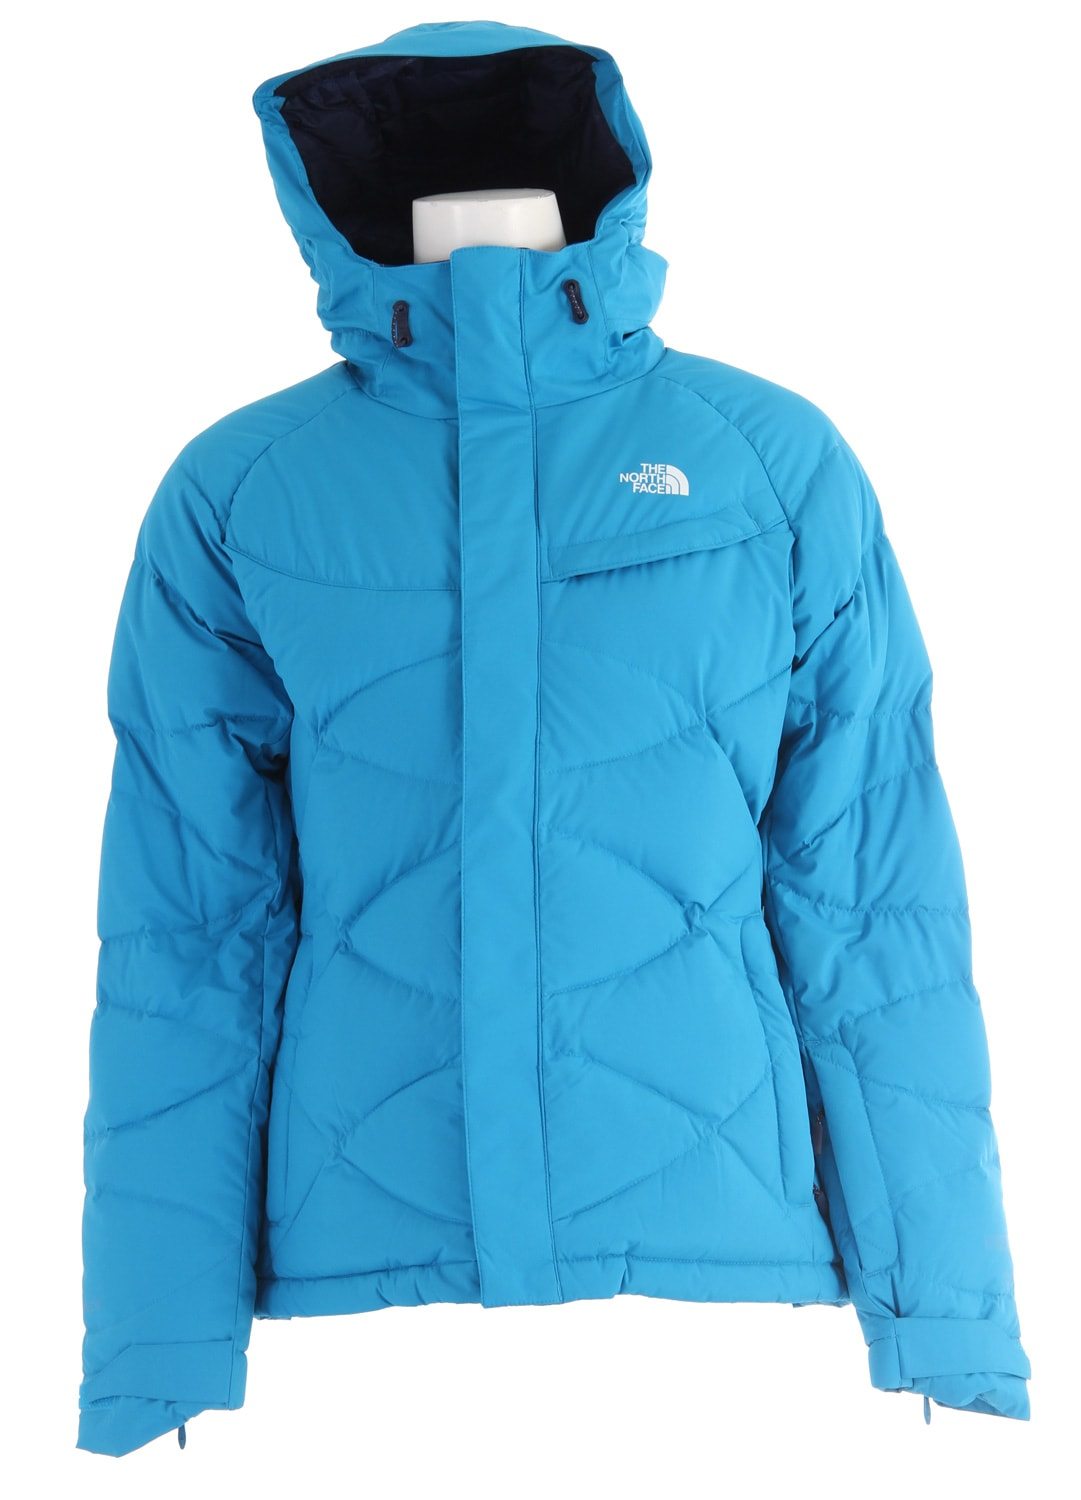 eef81ce215 The North Face Helicity Down Ski Jacket - thumbnail 1